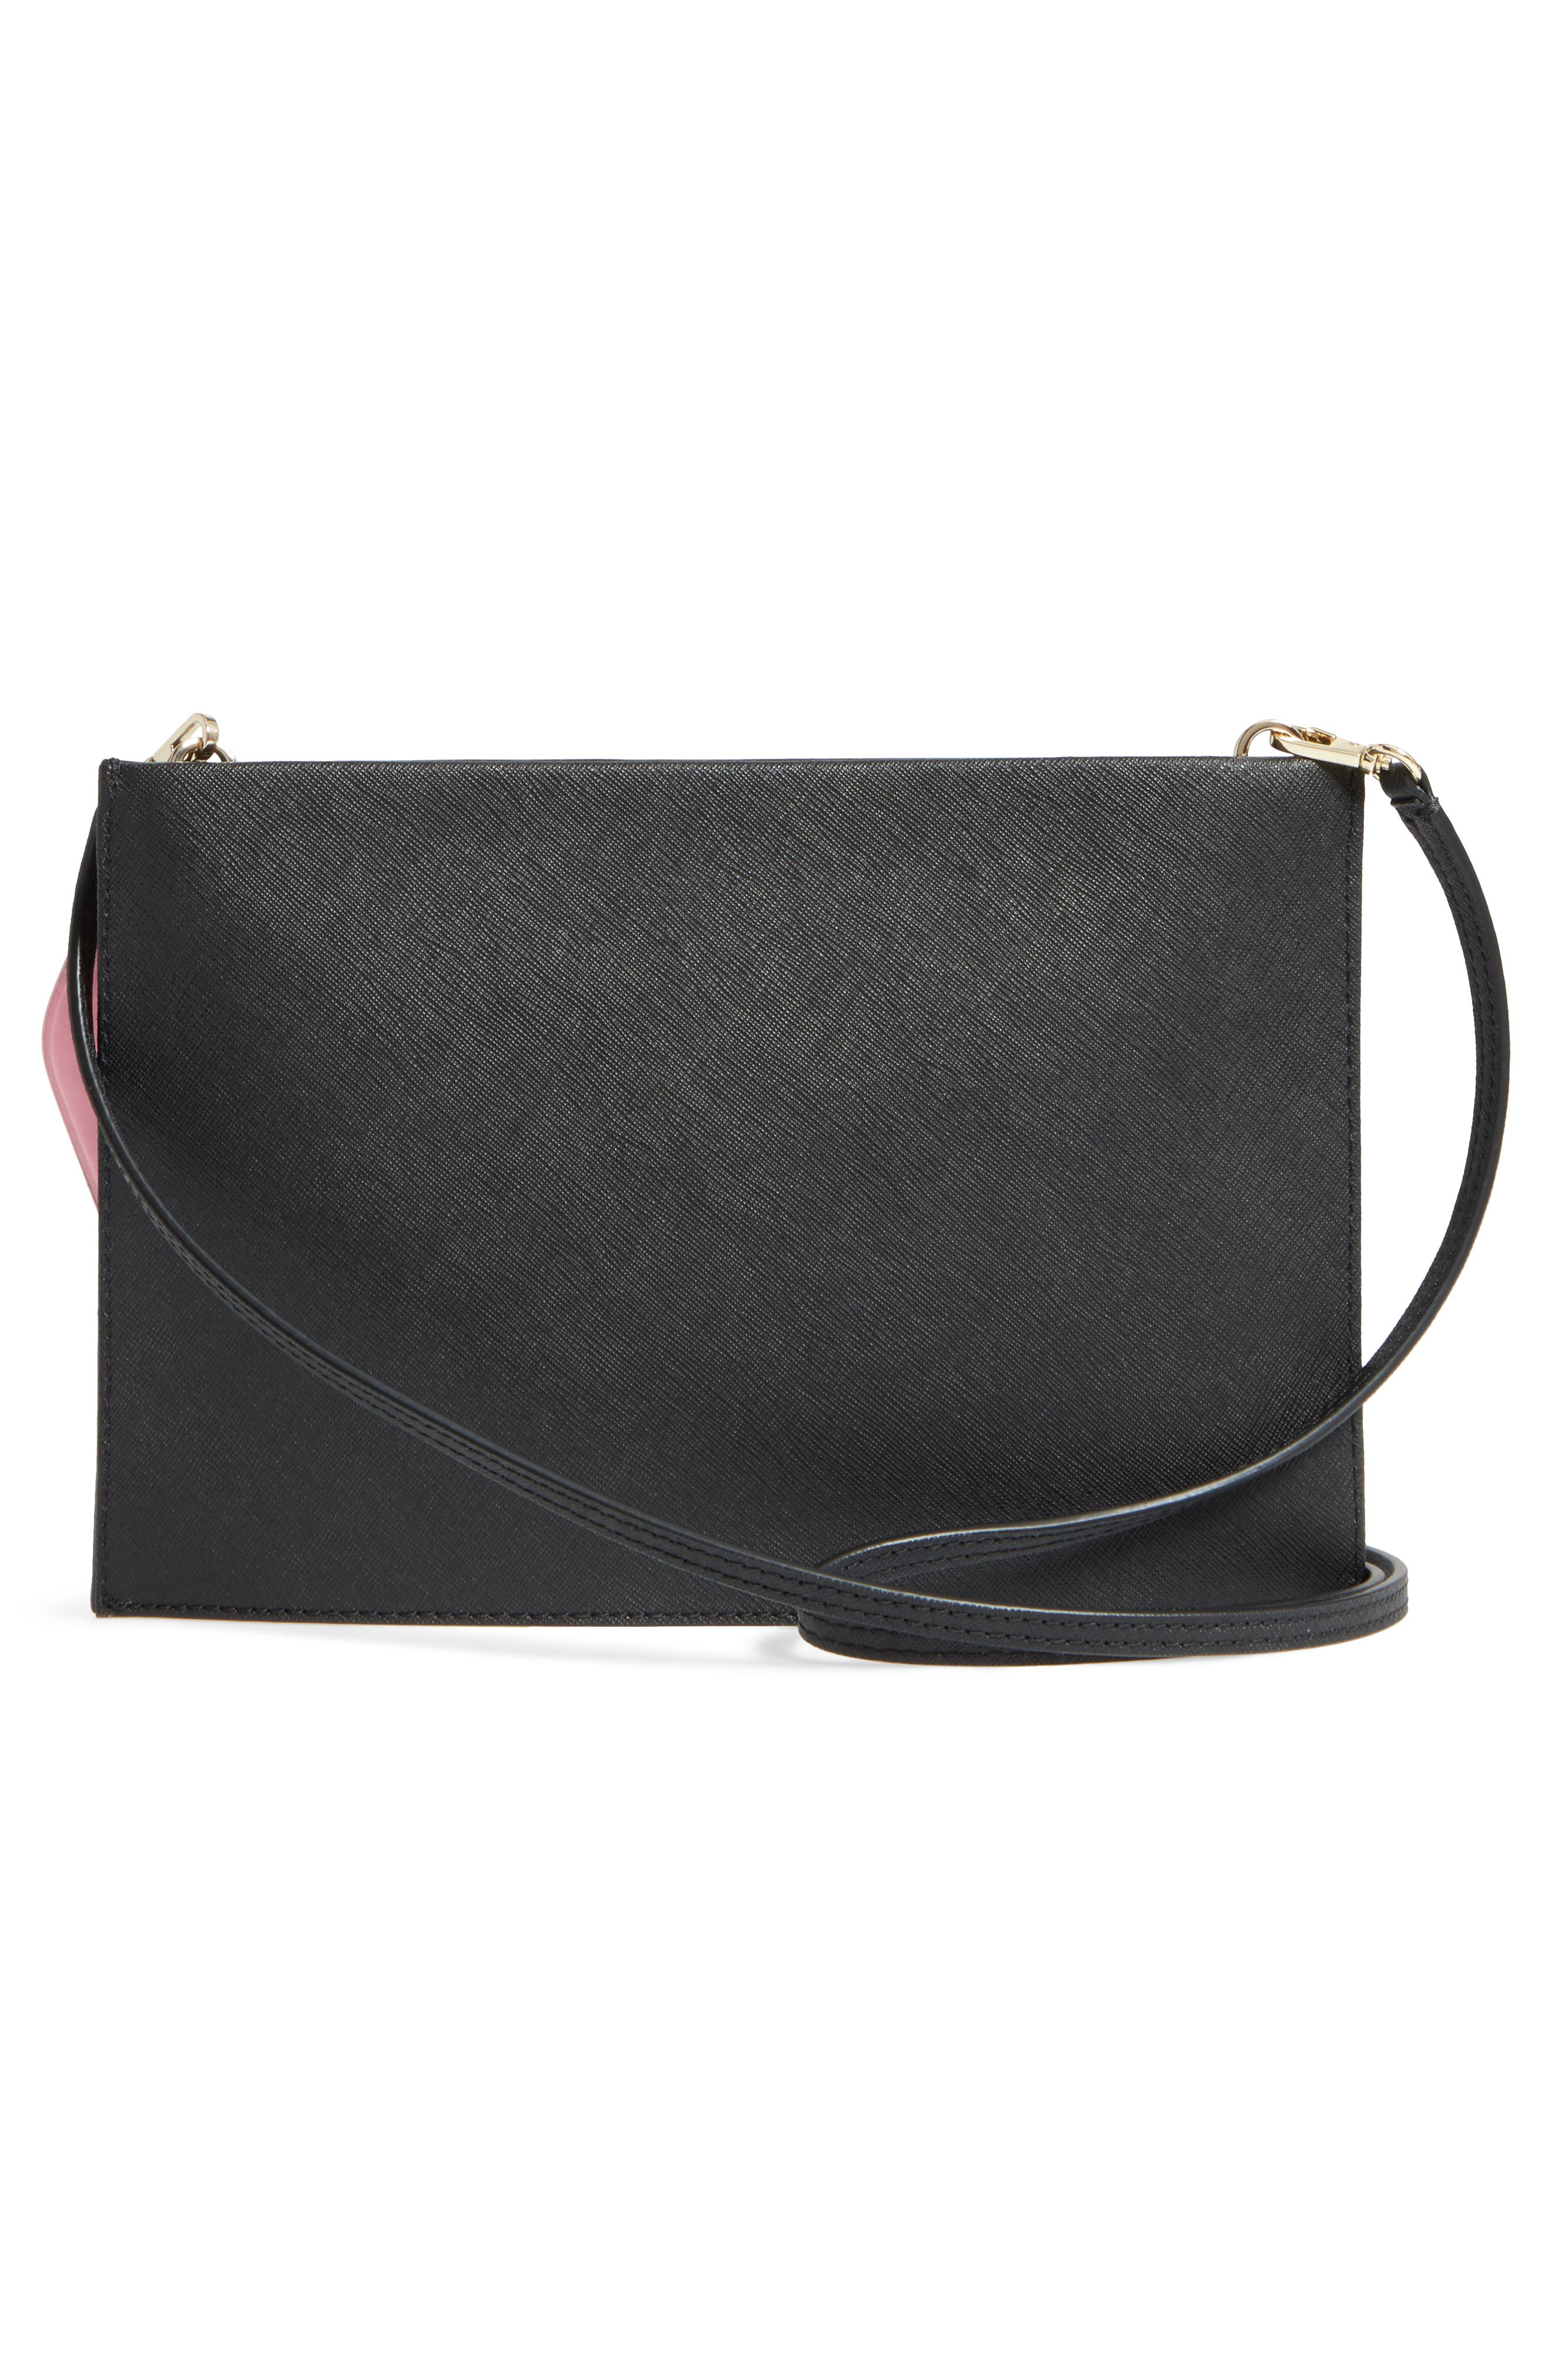 checking in – sima leather crossbody bag,                             Alternate thumbnail 3, color,                             001